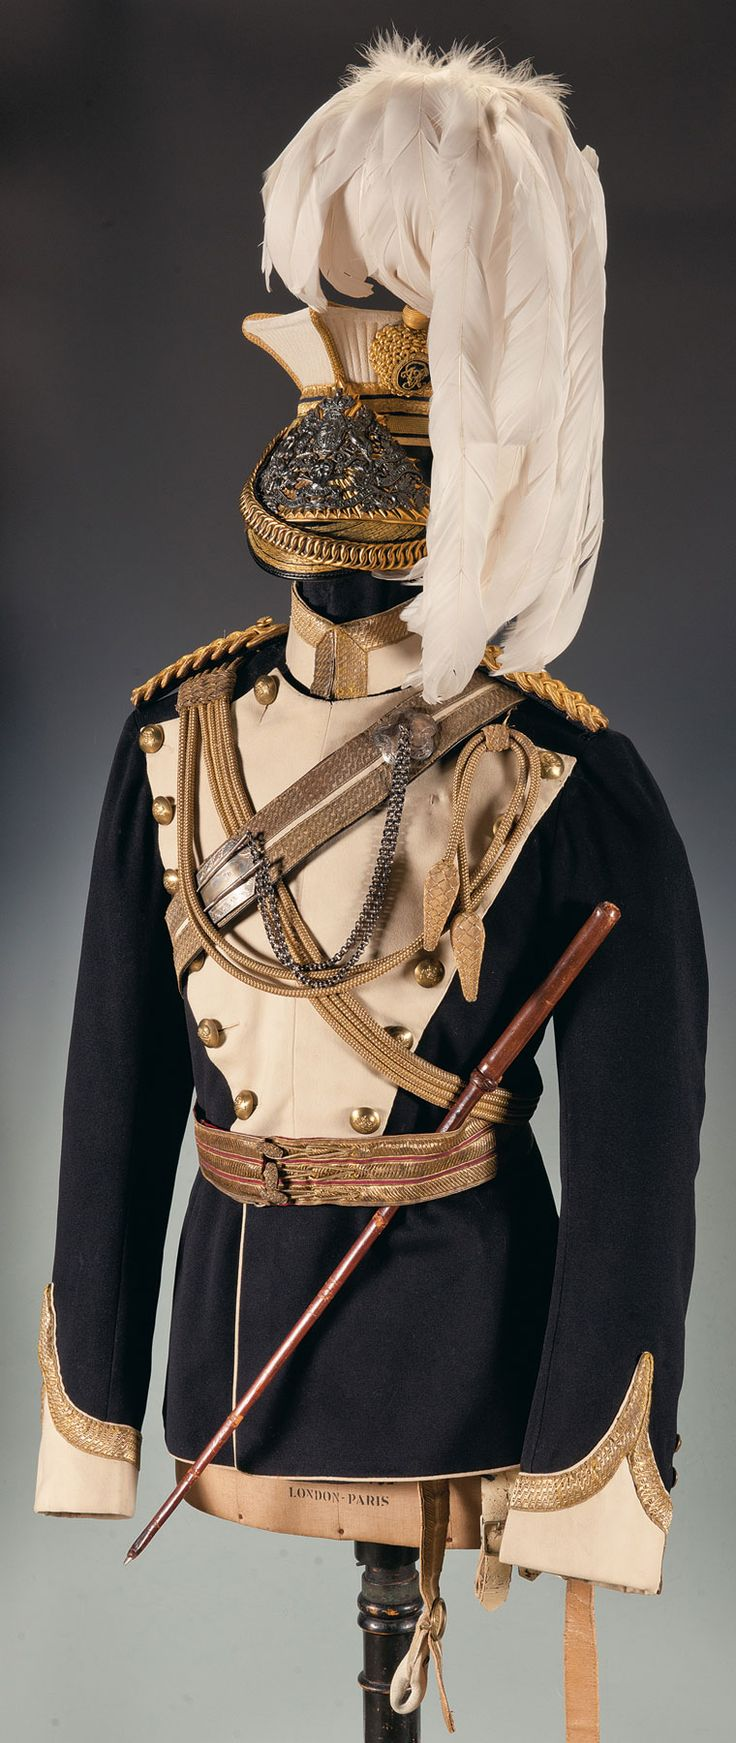 17th Lancers Officer's Lance Cap and Tunic